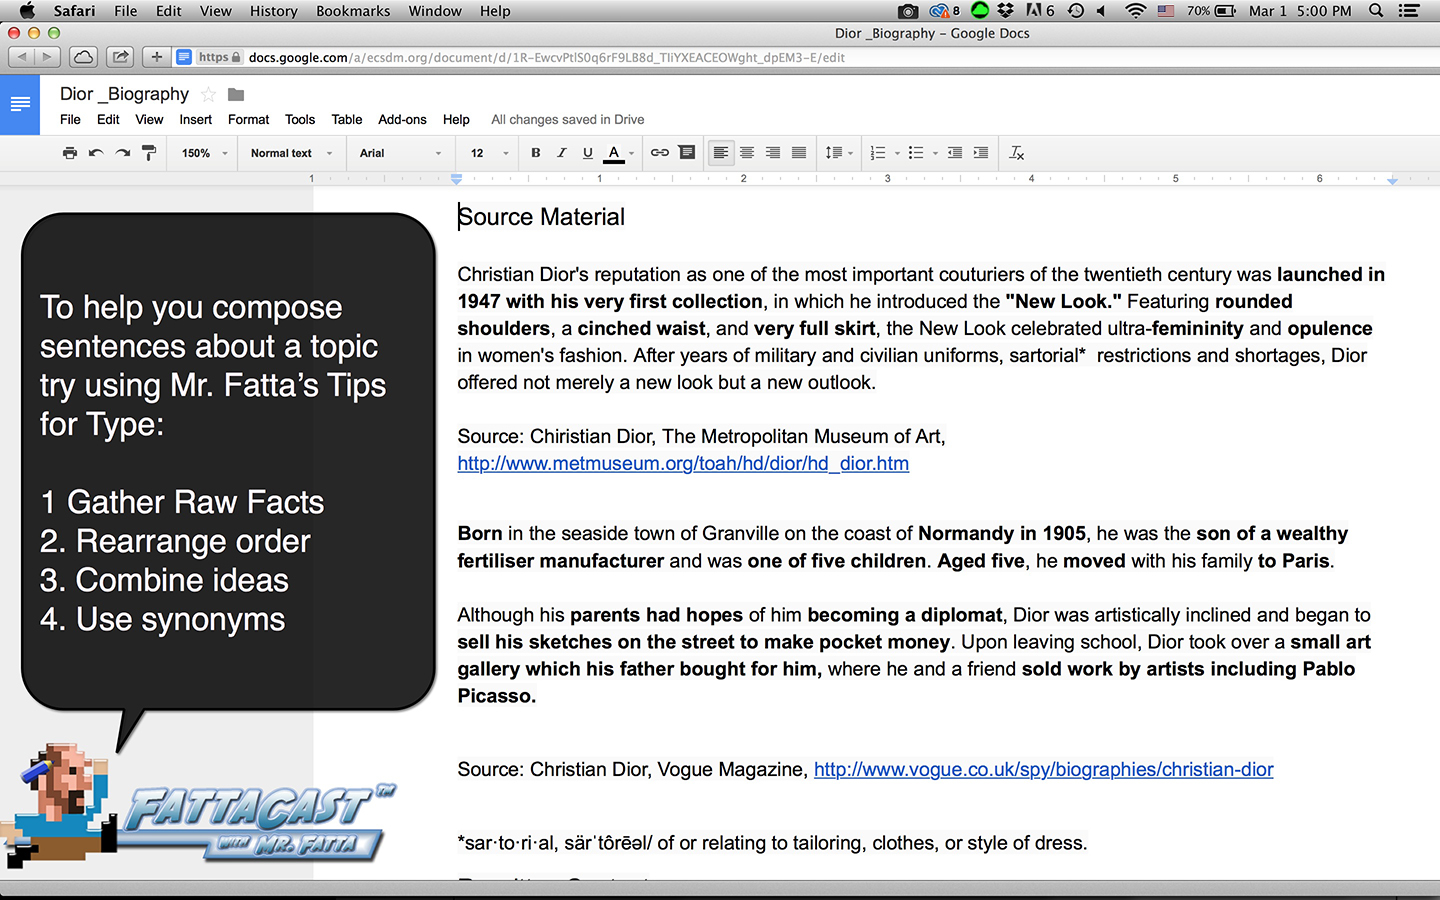 Writing from source tip 1